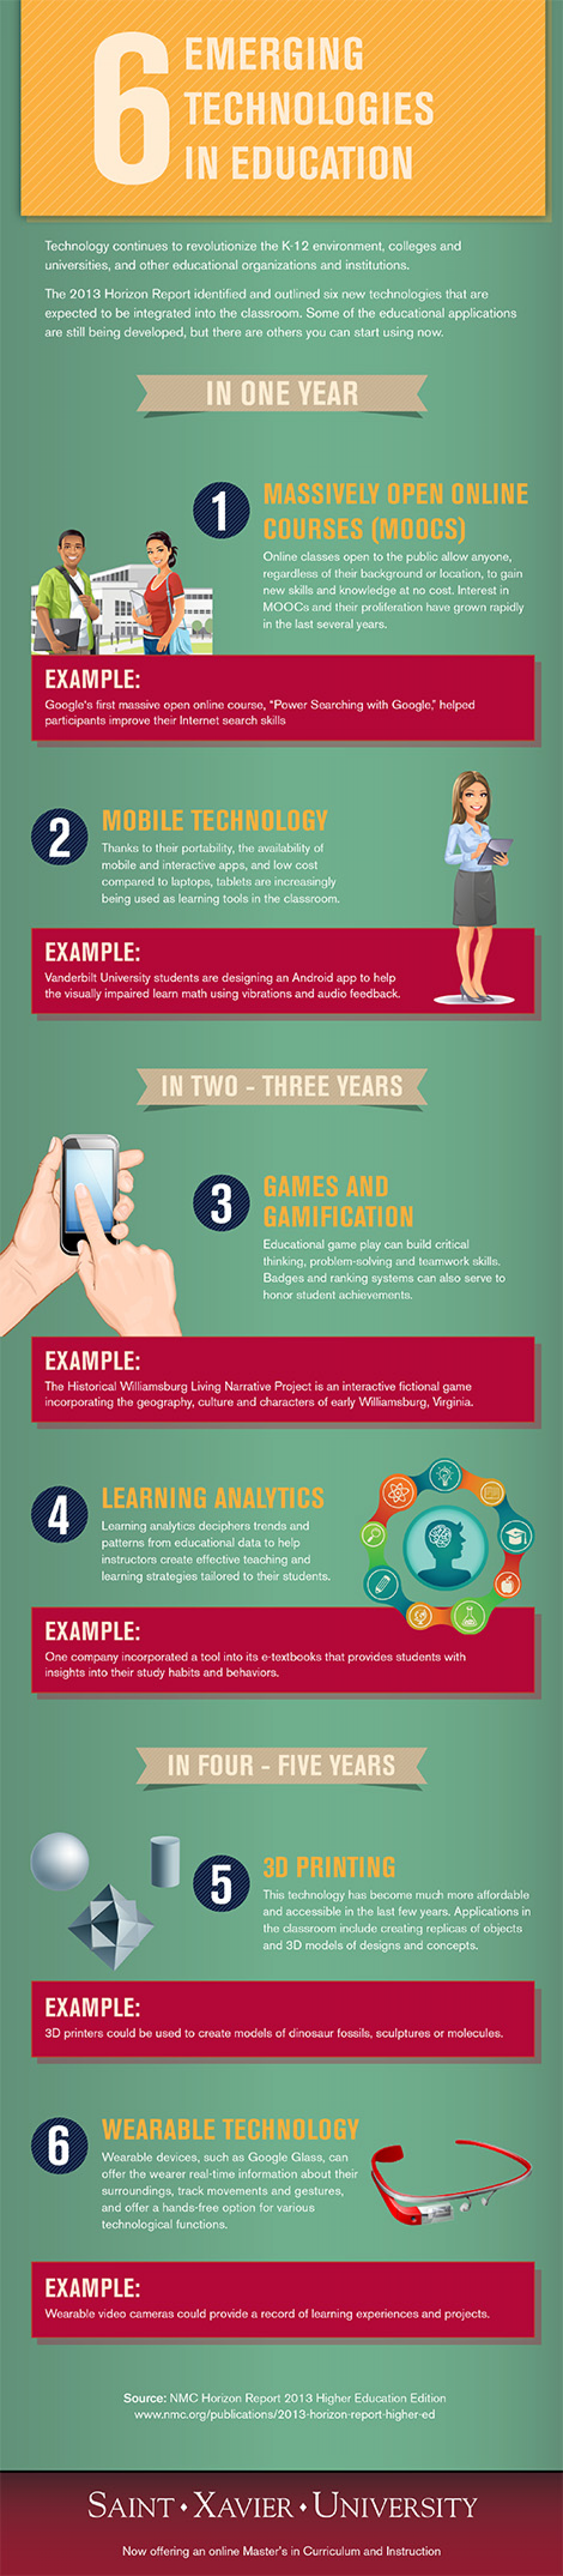 6 Emerging Technologies in Education Infographic